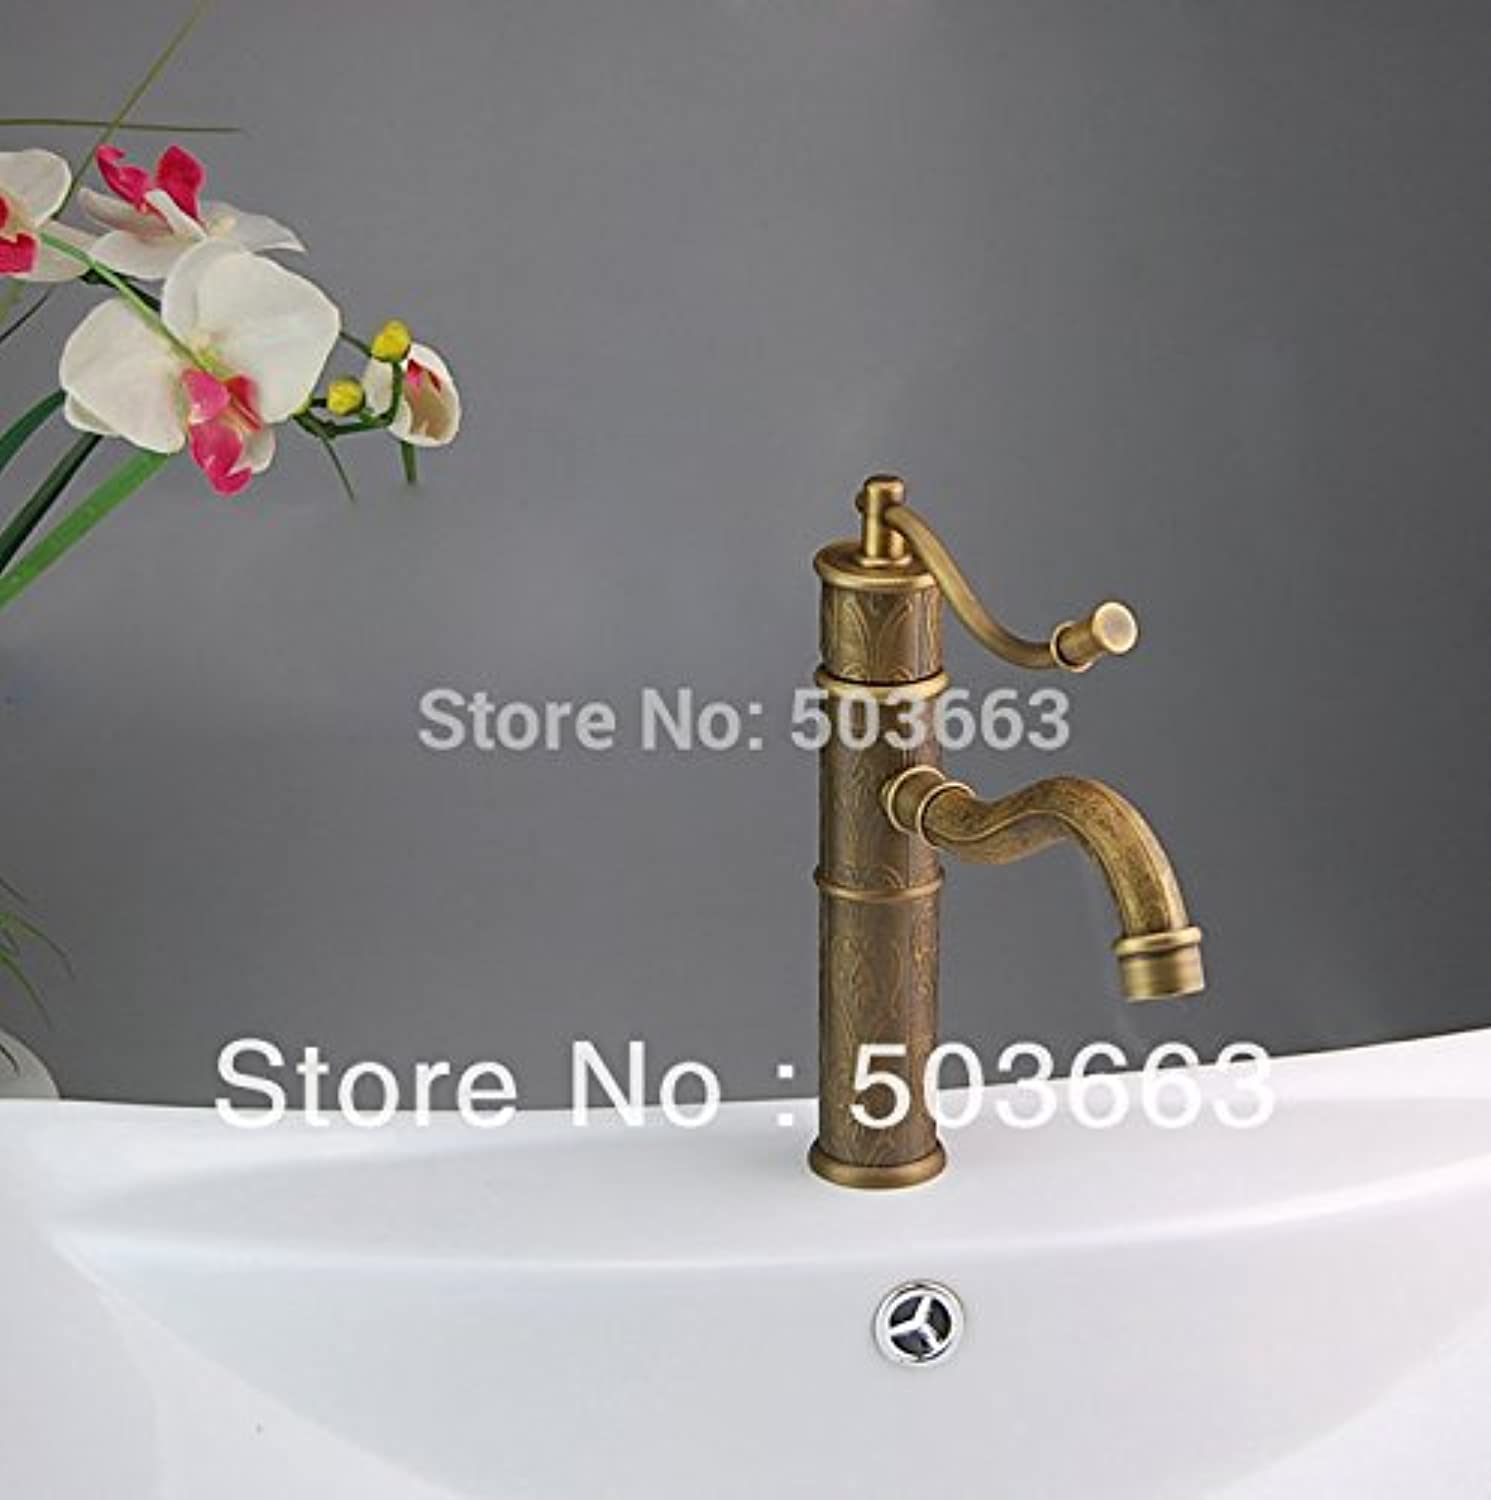 Maifeini The Top Level Modern Deck Install Bathroom And Kitchen Sinks Faucets Classic Patterns Of Mixer Tap?,?Brass